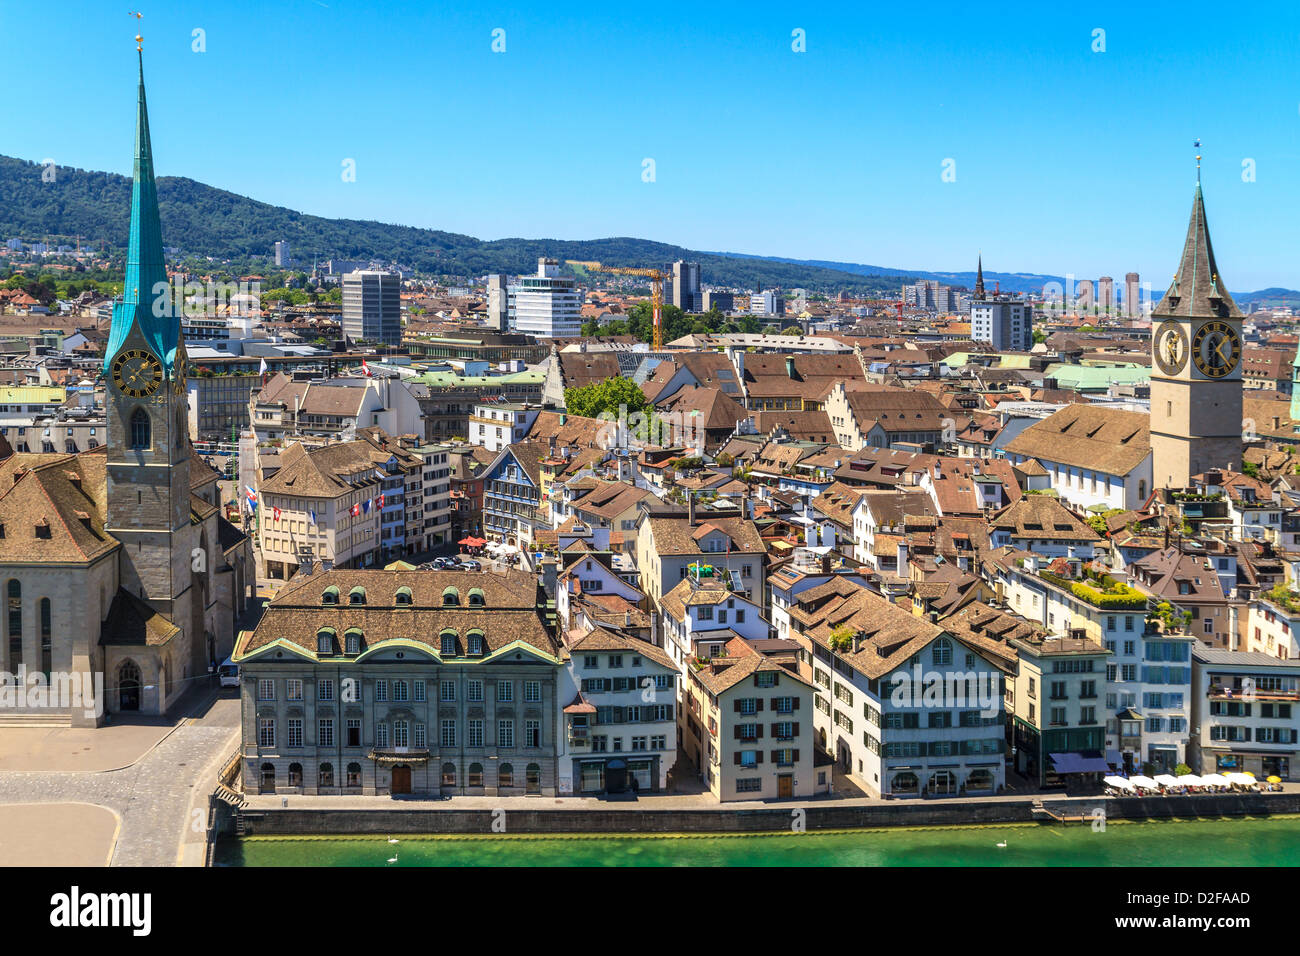 Zurich Cityscape (aerial view from elevated position) - Stock Image